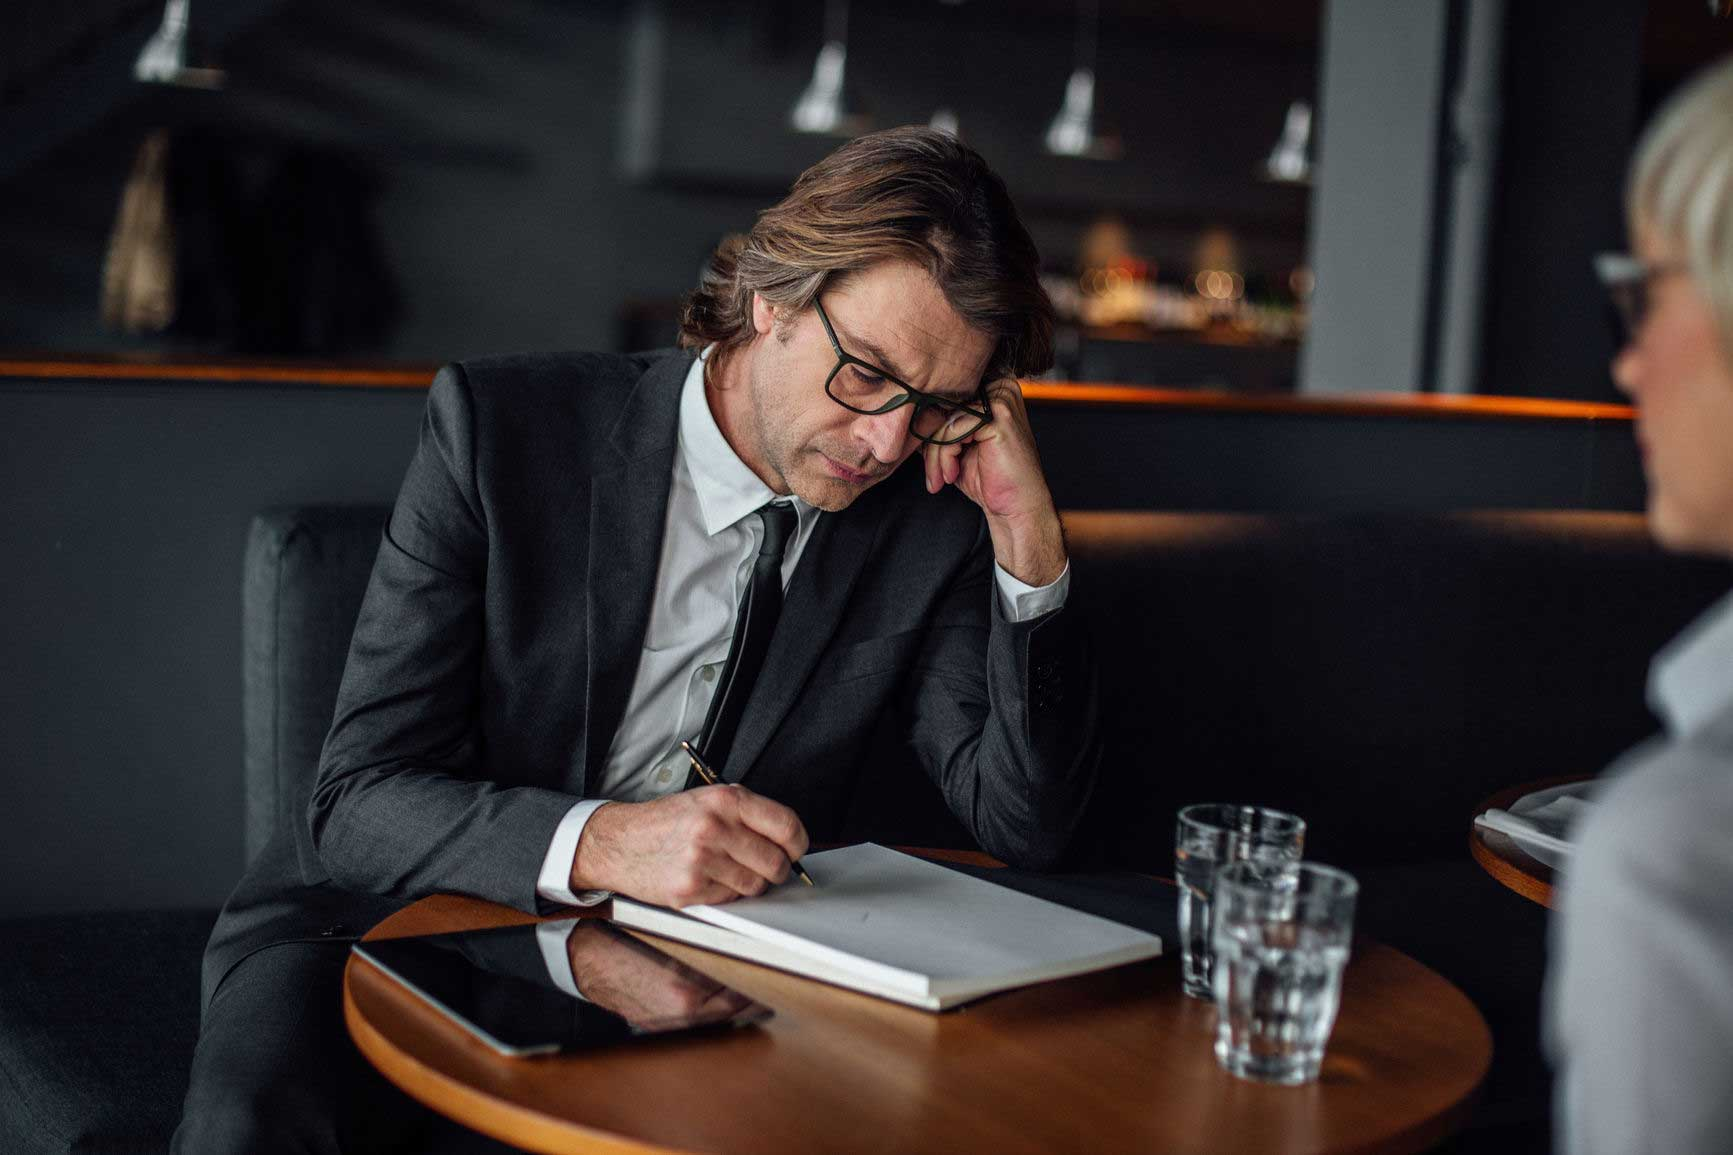 man sitting in a suit writing in a notebook